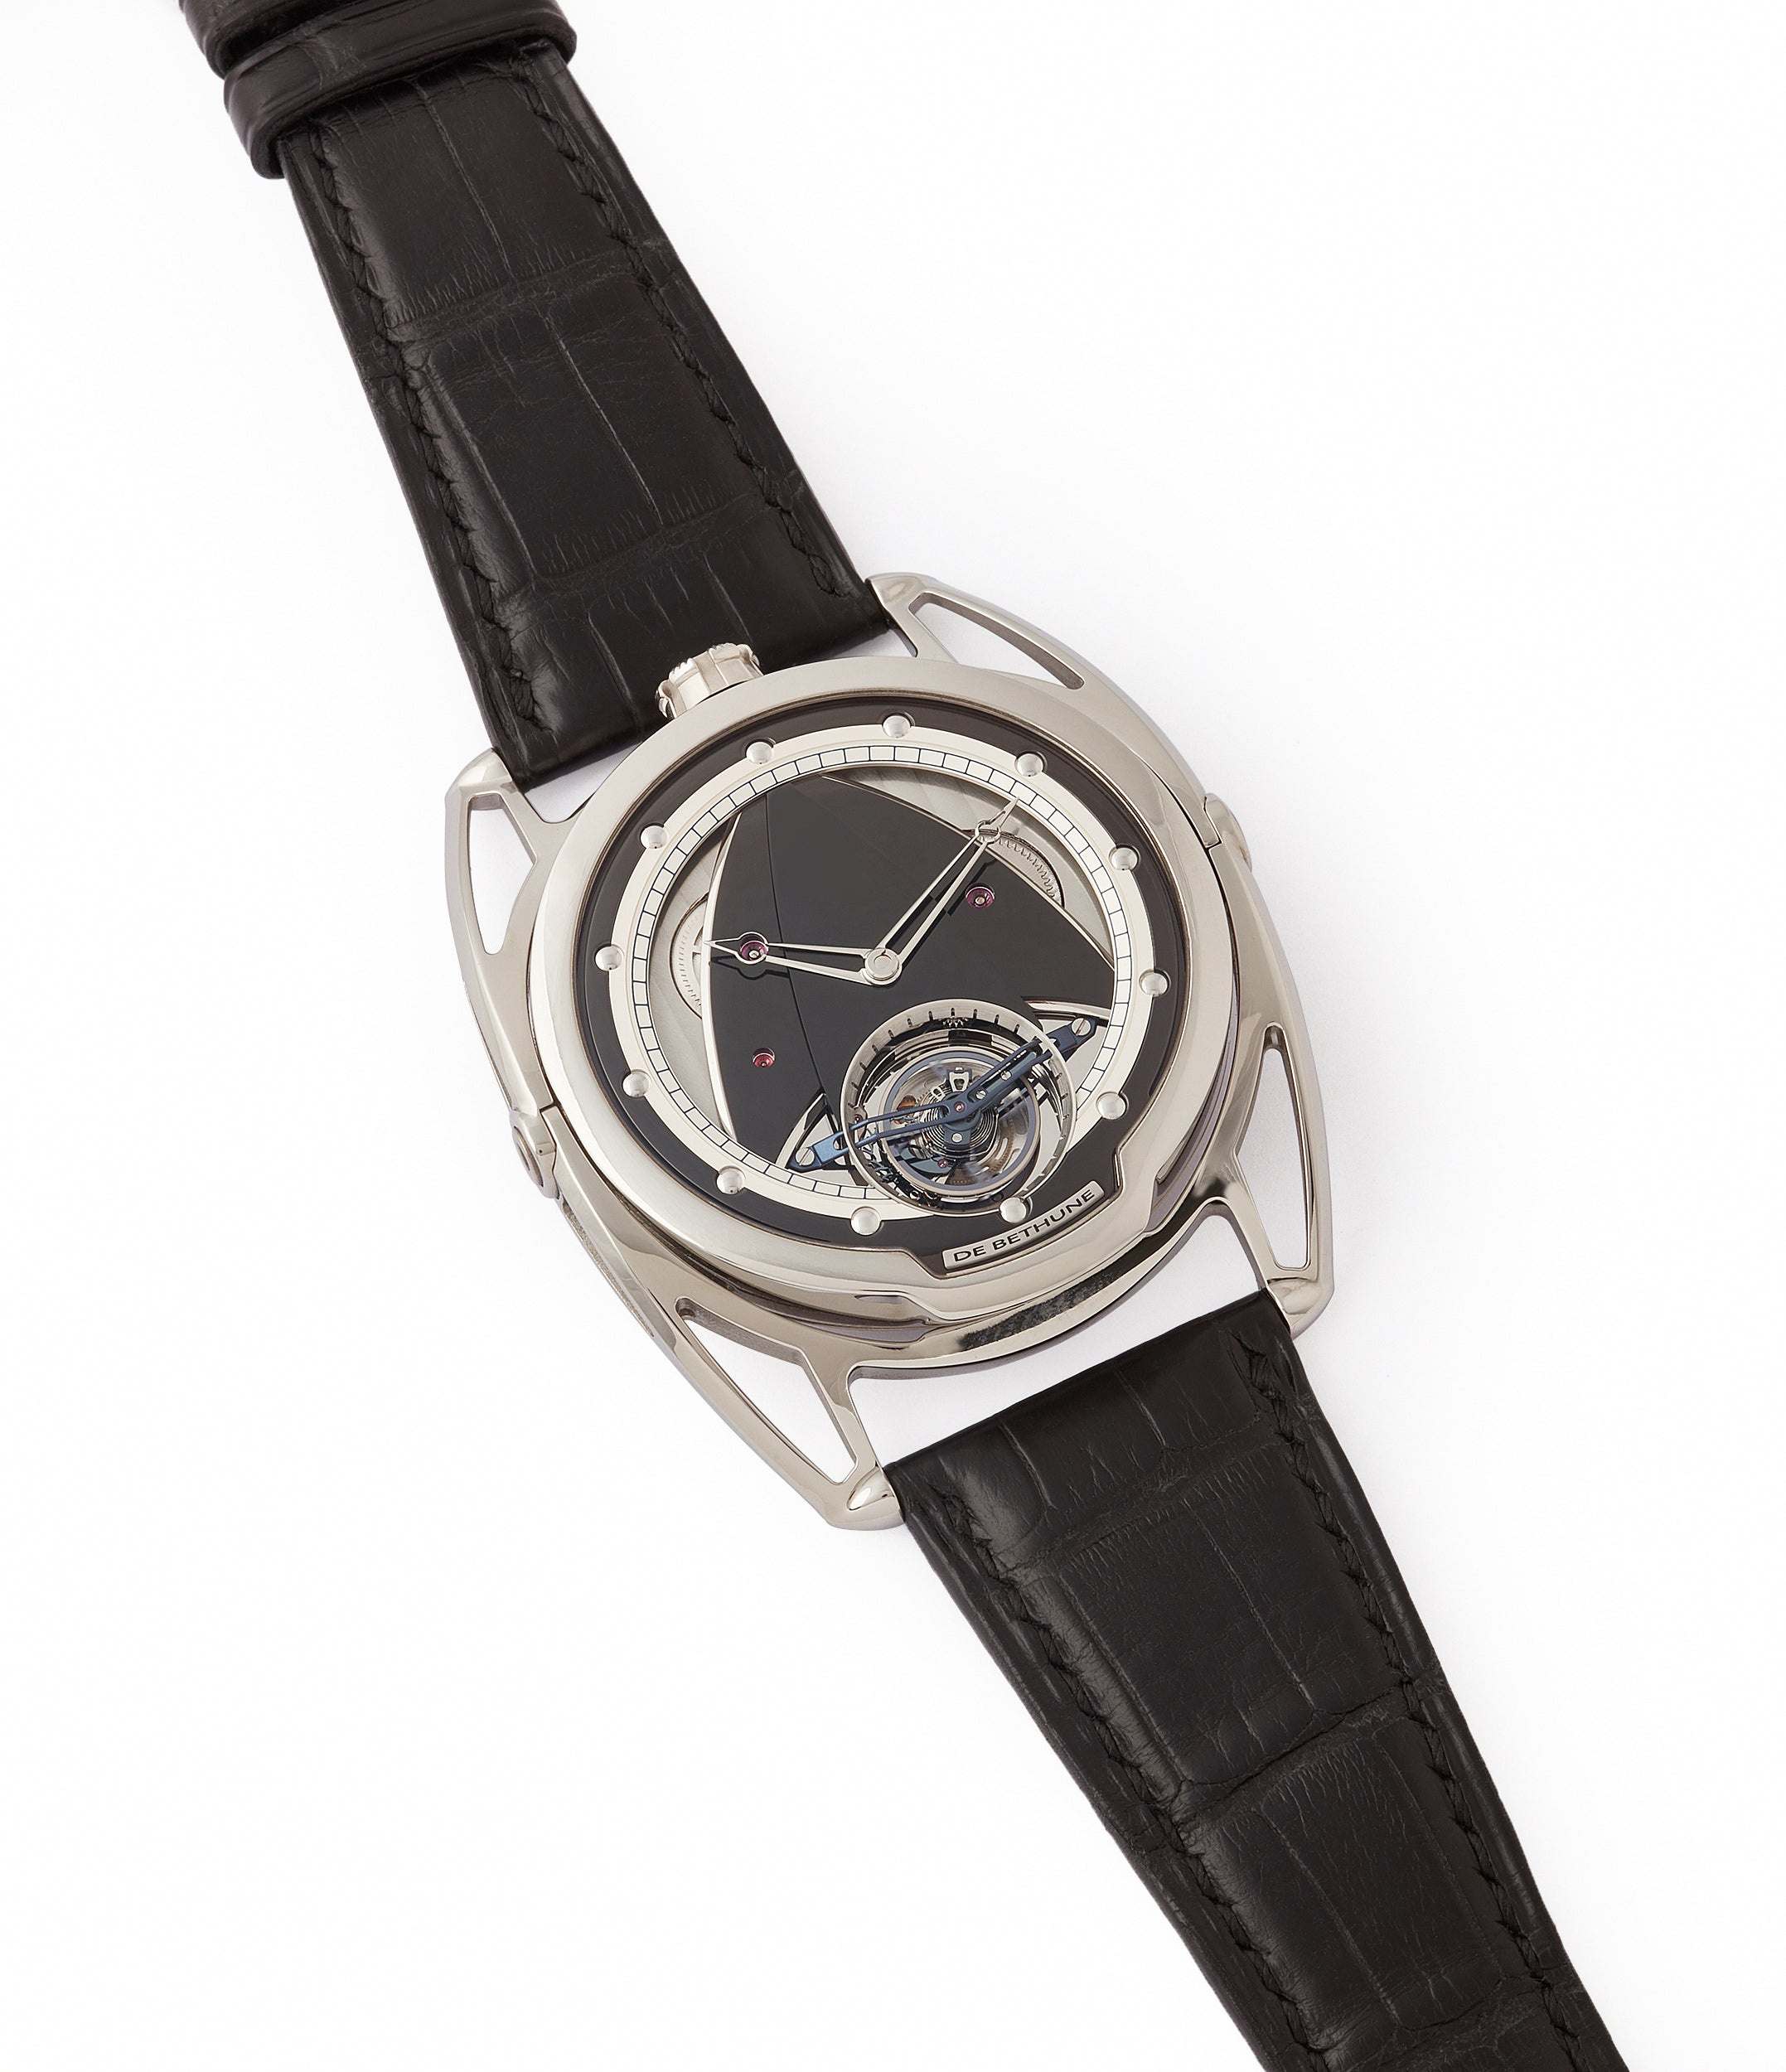 sell De Bethune DB28T tourbillon titanium time-only watch from independent watchmaker for sale online at A Collected Man London UK specialist of rare watches